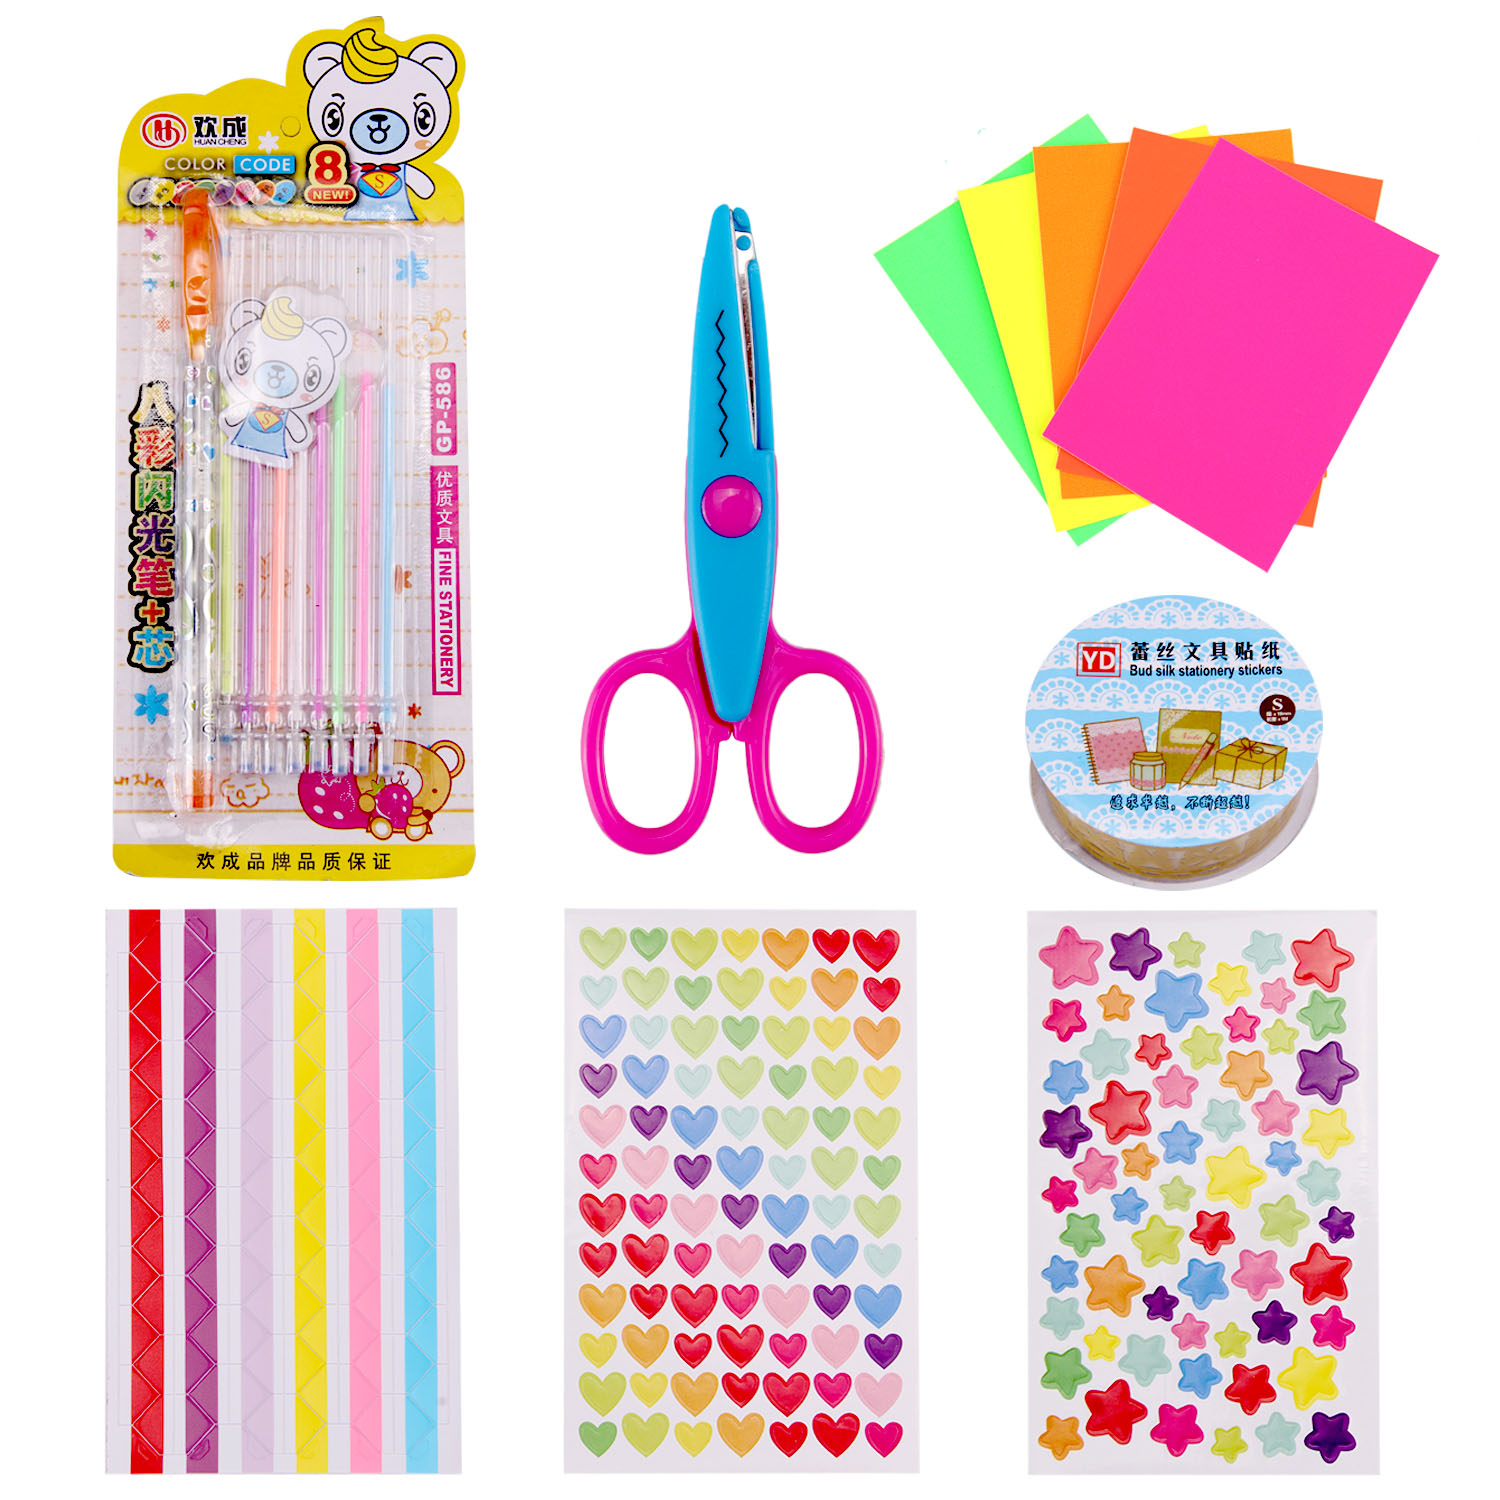 Complete DIY Craft Supplies Kit Including Lace Tape Pens Sticker Scissor For DIY Diary Photo Album Scrapbook Explosion Box Gifts